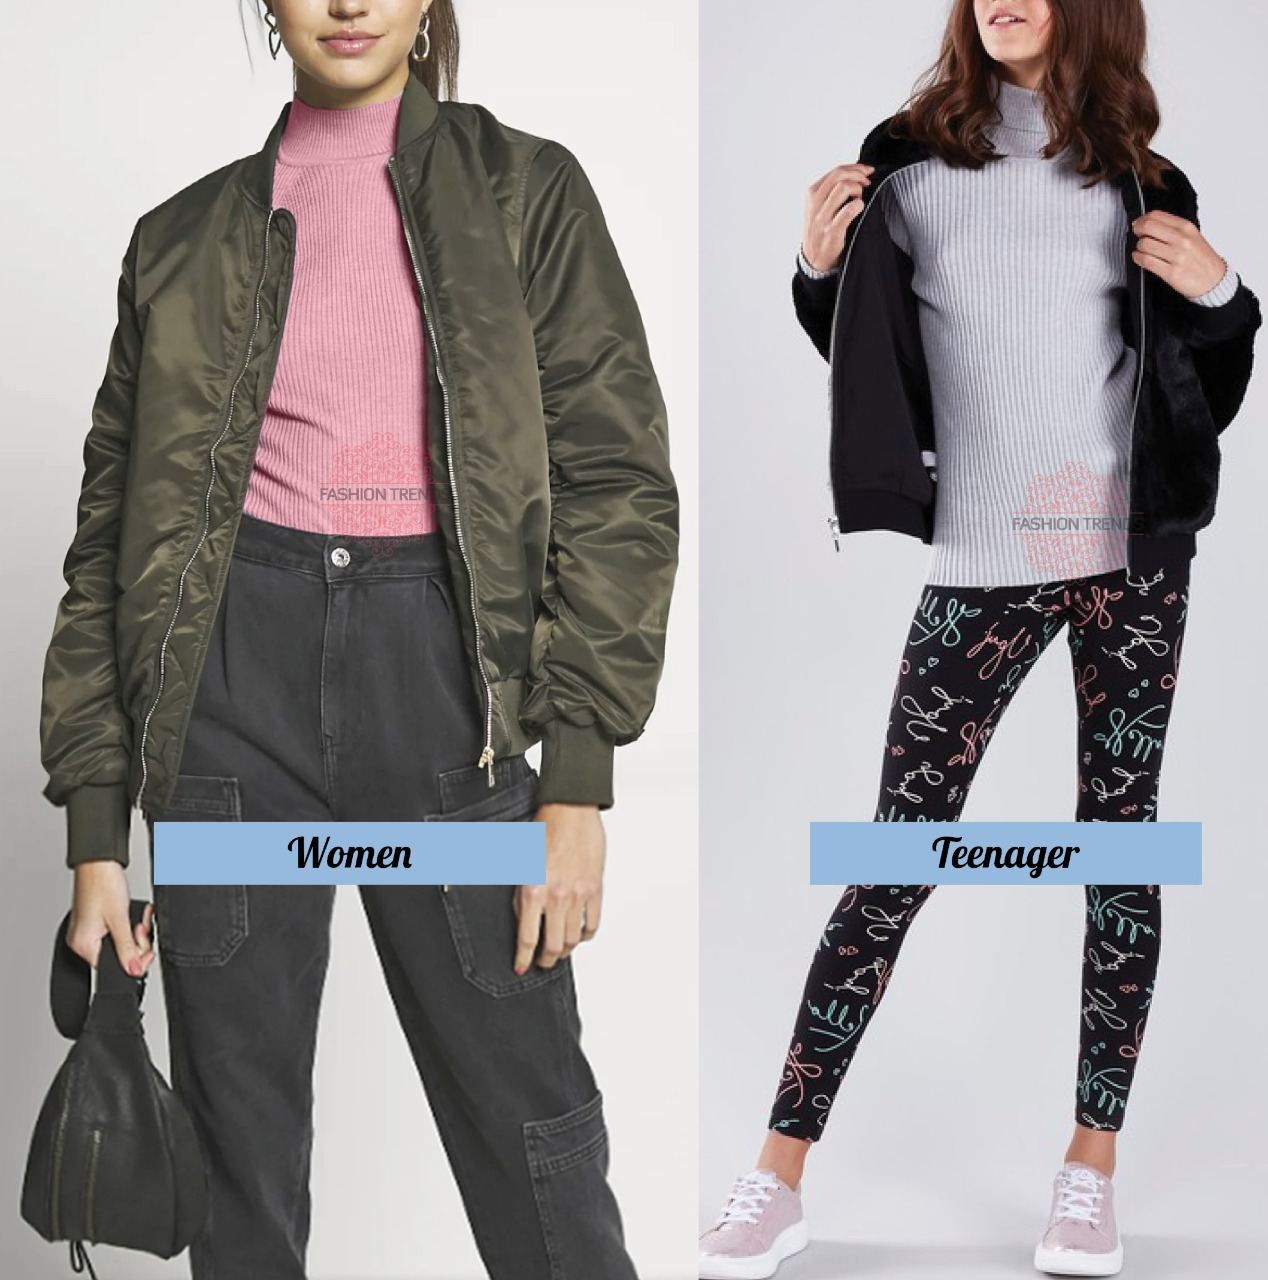 K4u Launch High Neck Top Full Stretchable Heavy Cotton Semi Winter Special Teenager And Women Top